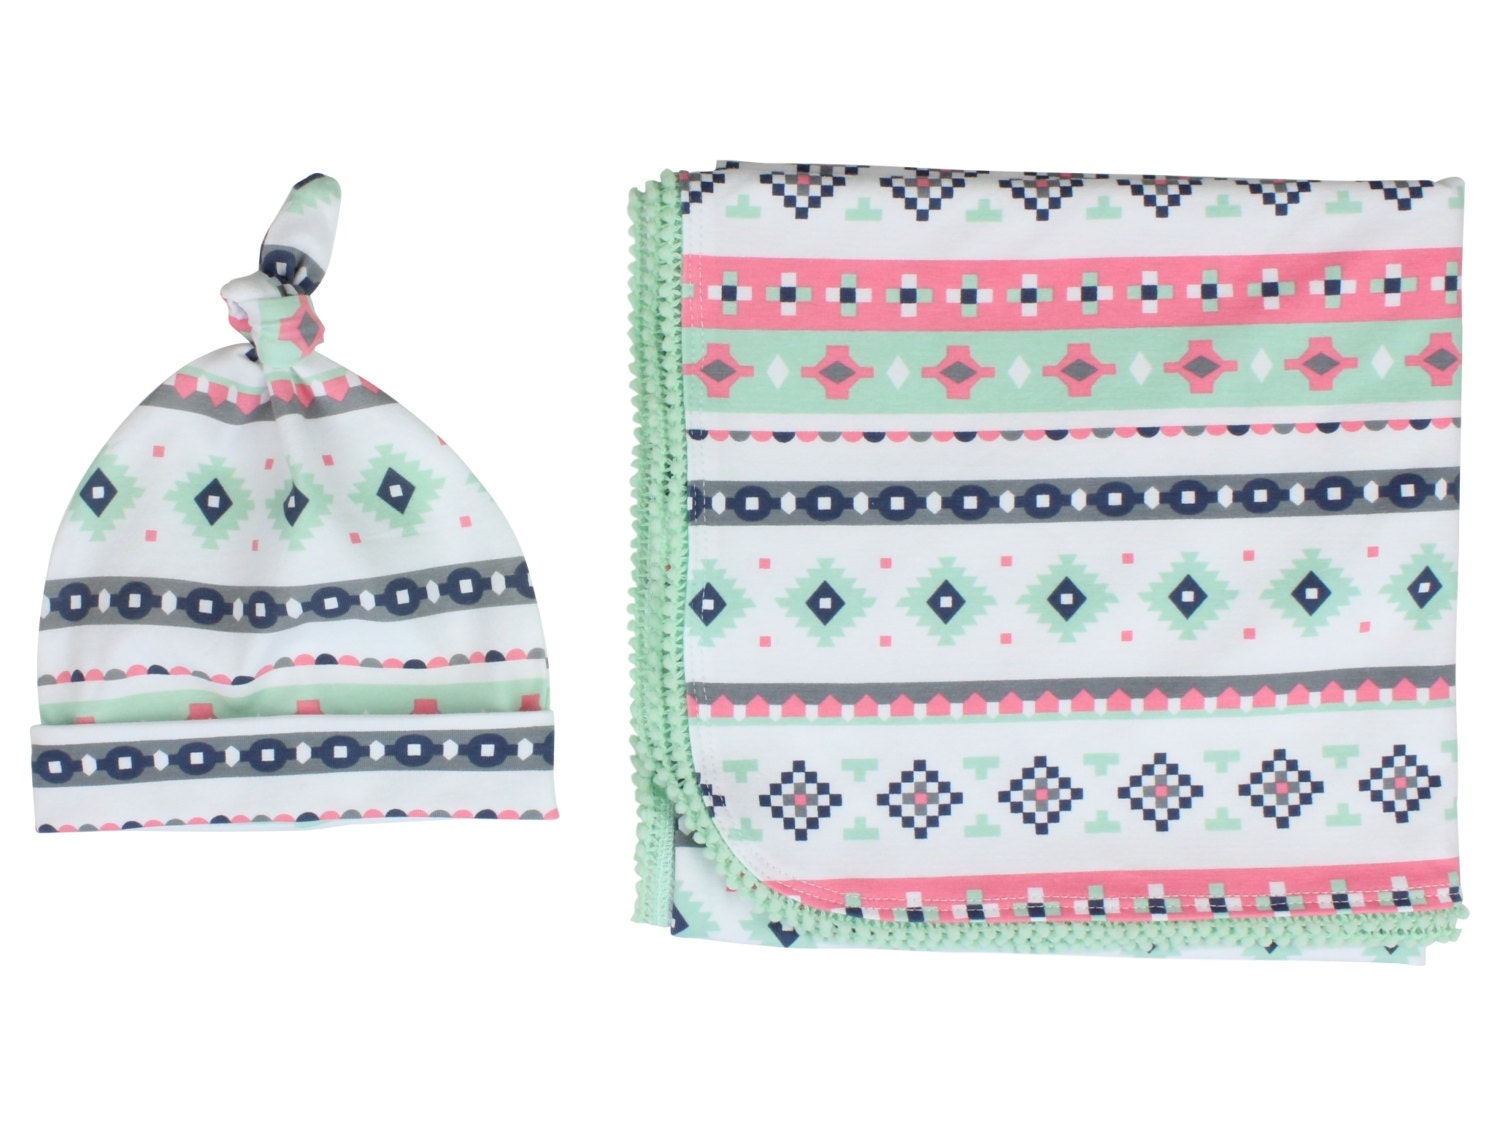 6faf43674bb Mint Pink Tribal Newborn Swaddle Set Swaddle Blanket Top Knot Hat Knot  Headband Feather Pom Pom Blanket Jersey Swaddle Baby Blanket Aztec. gallery  photo ...